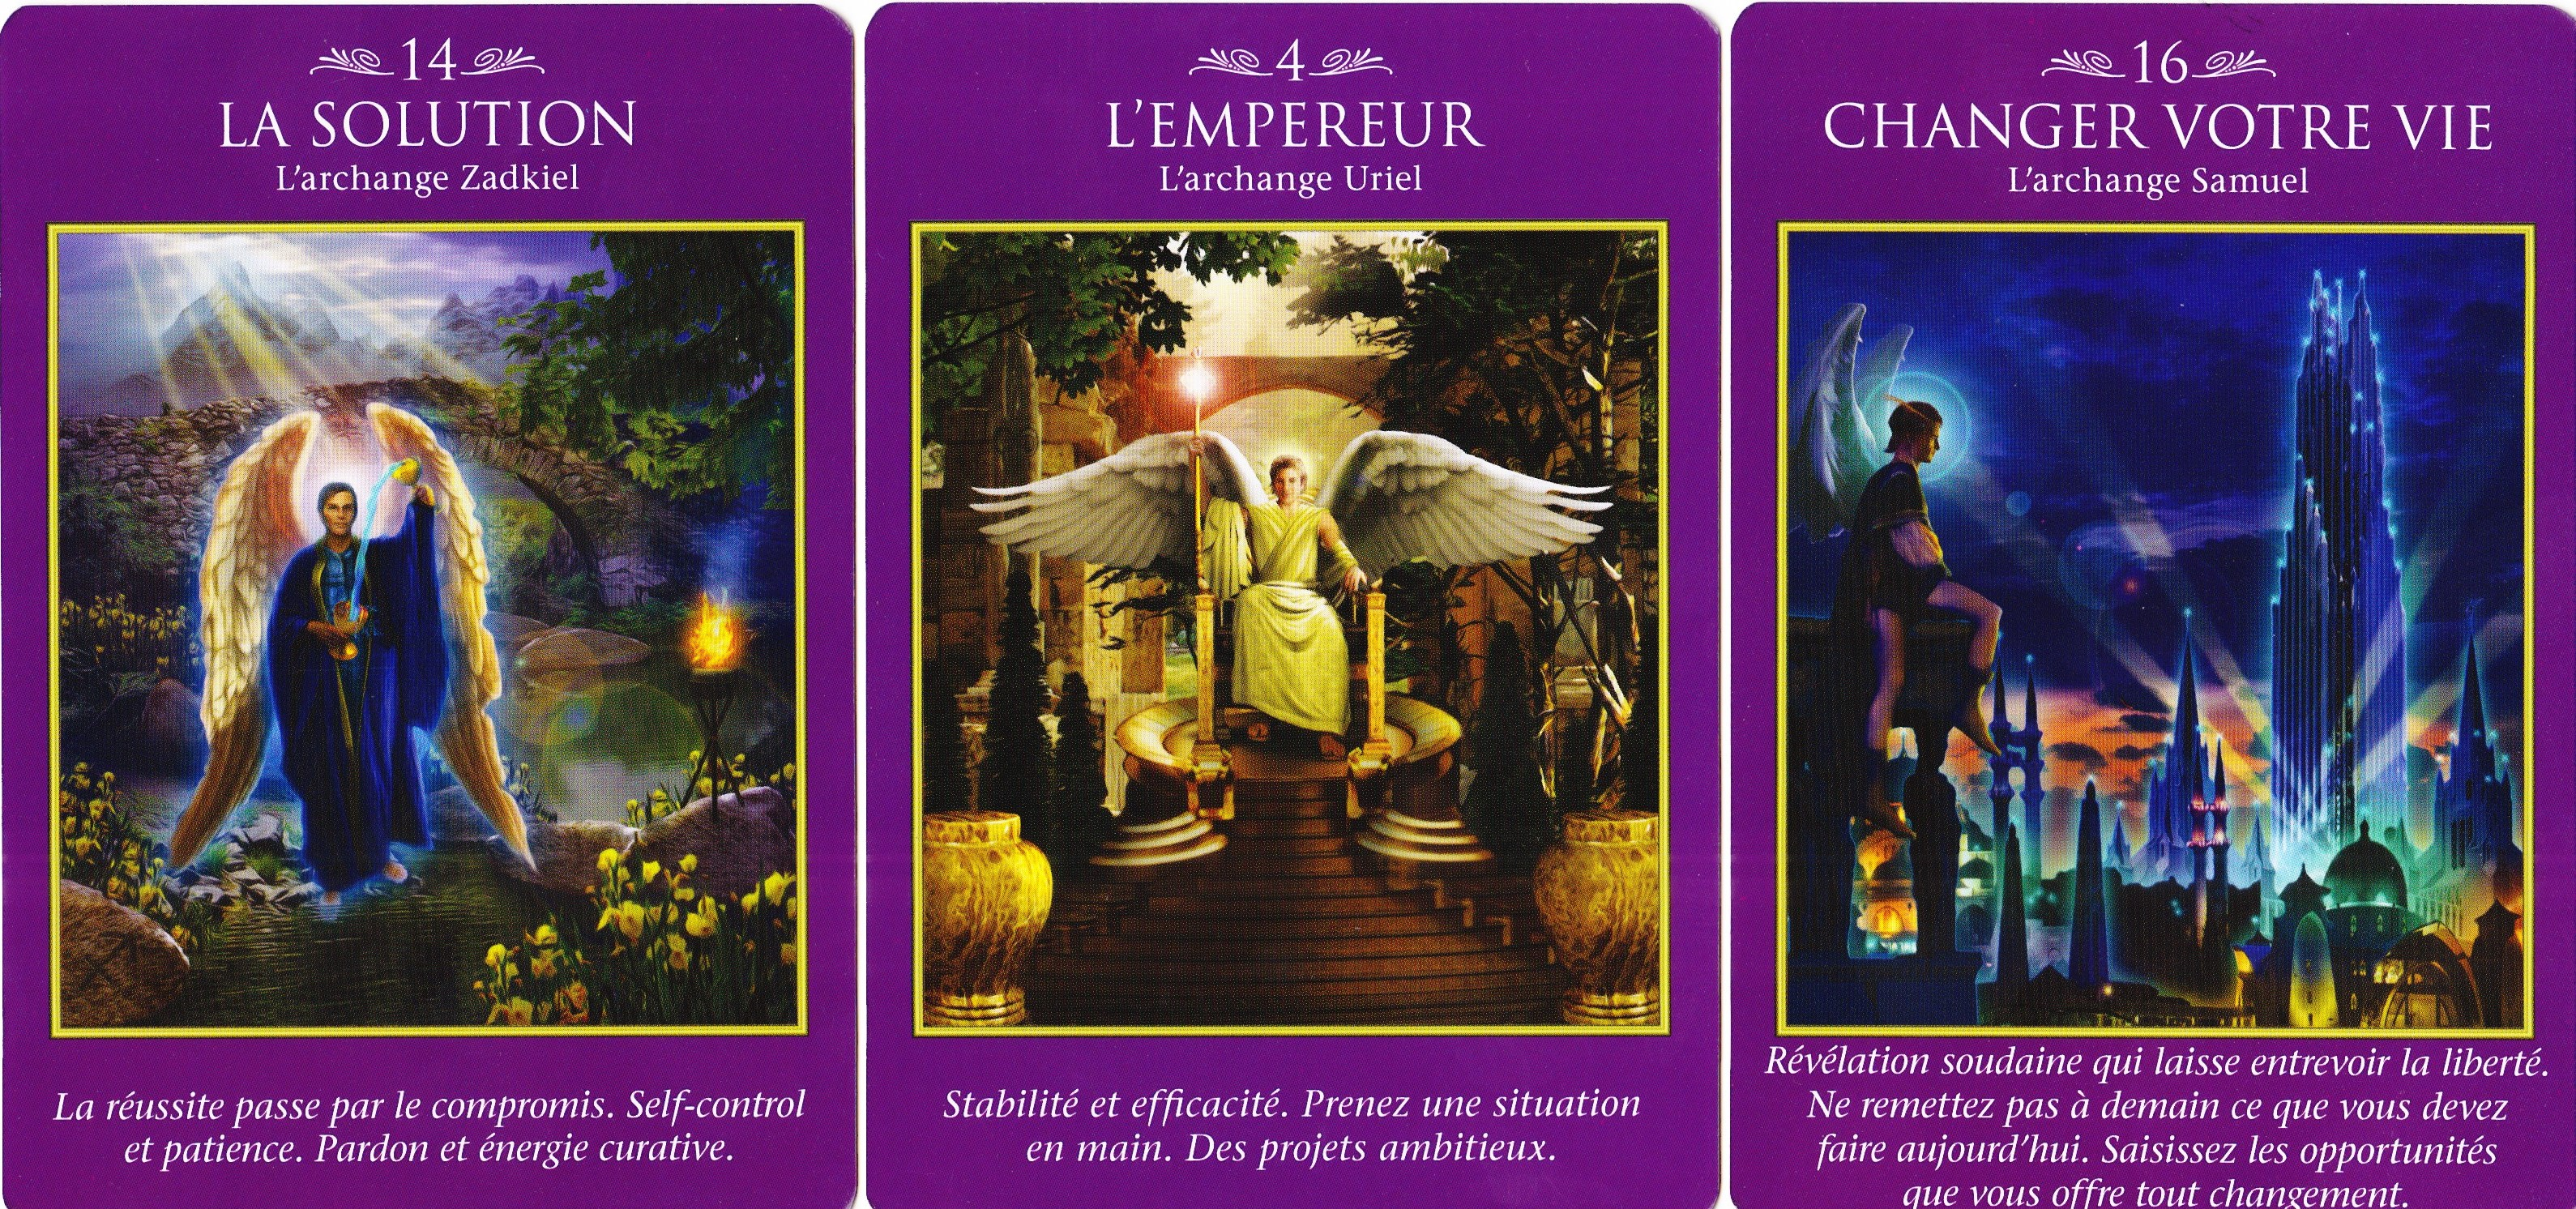 06-Solution Zadkiel - Empereur Uriel - changer vie Samuel - Le Tarot des Archanges - Doreen Virtue 001